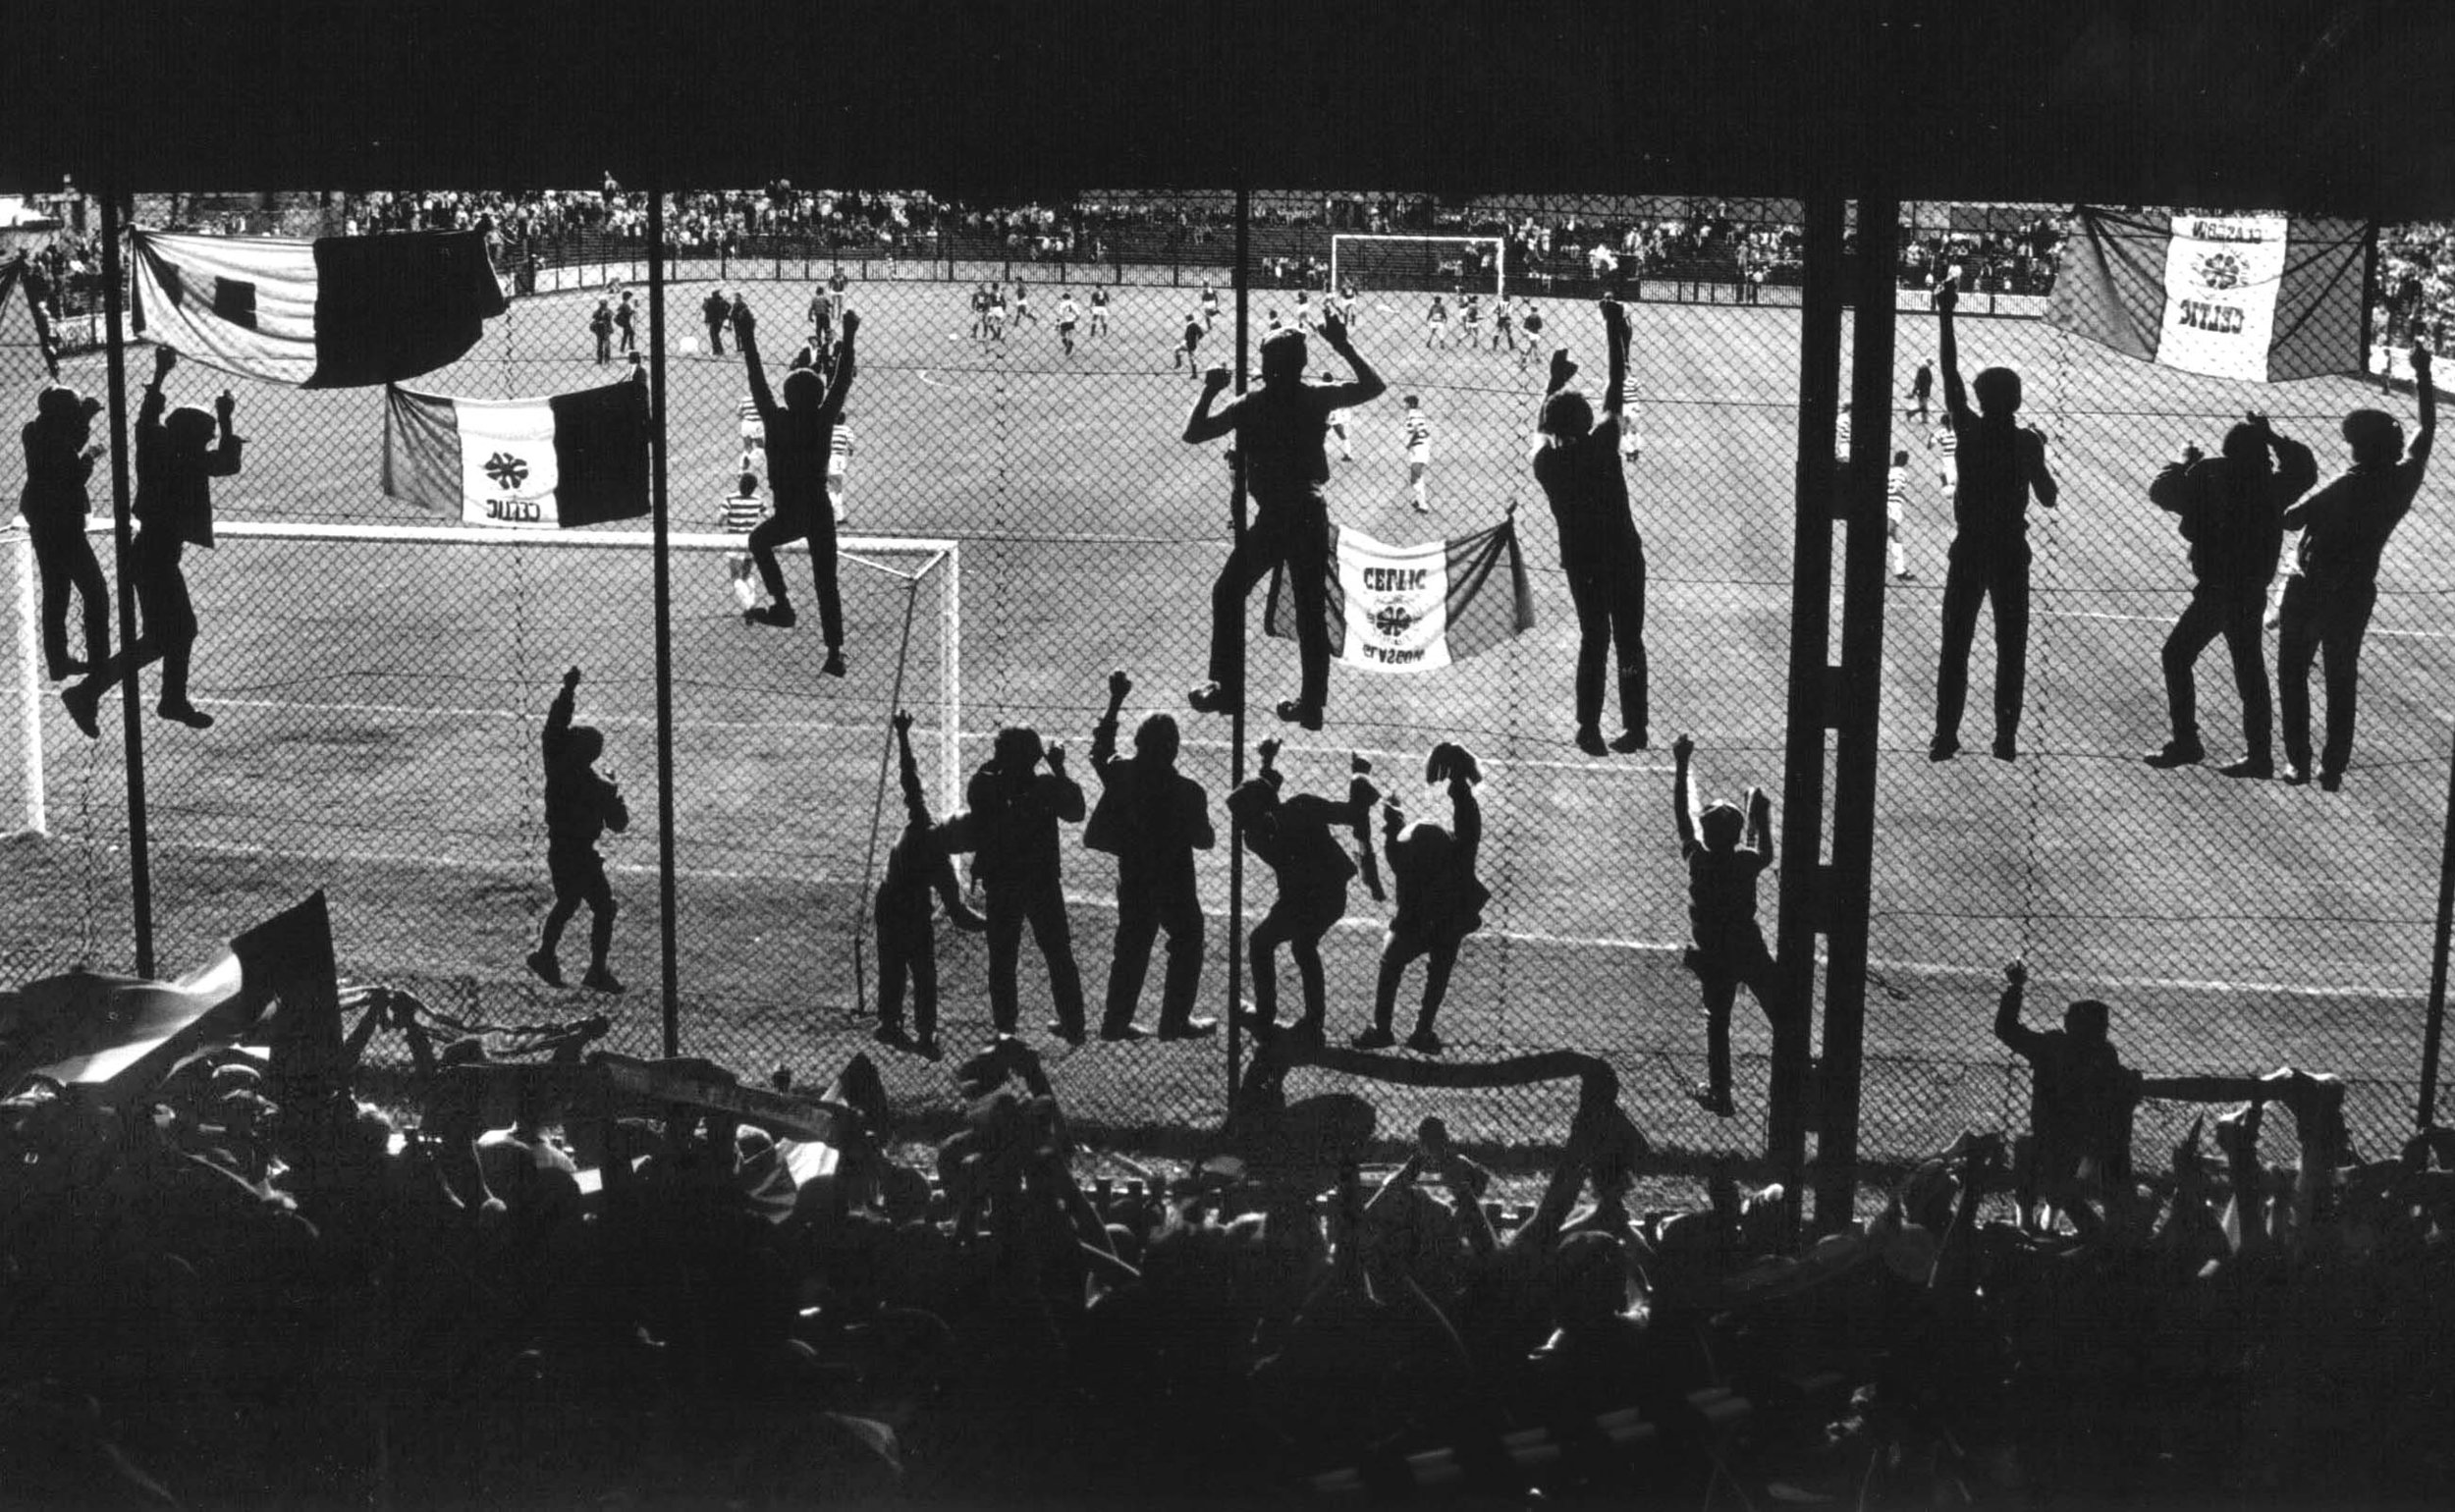 General - Sport Football supporters in cage 1984.jpg